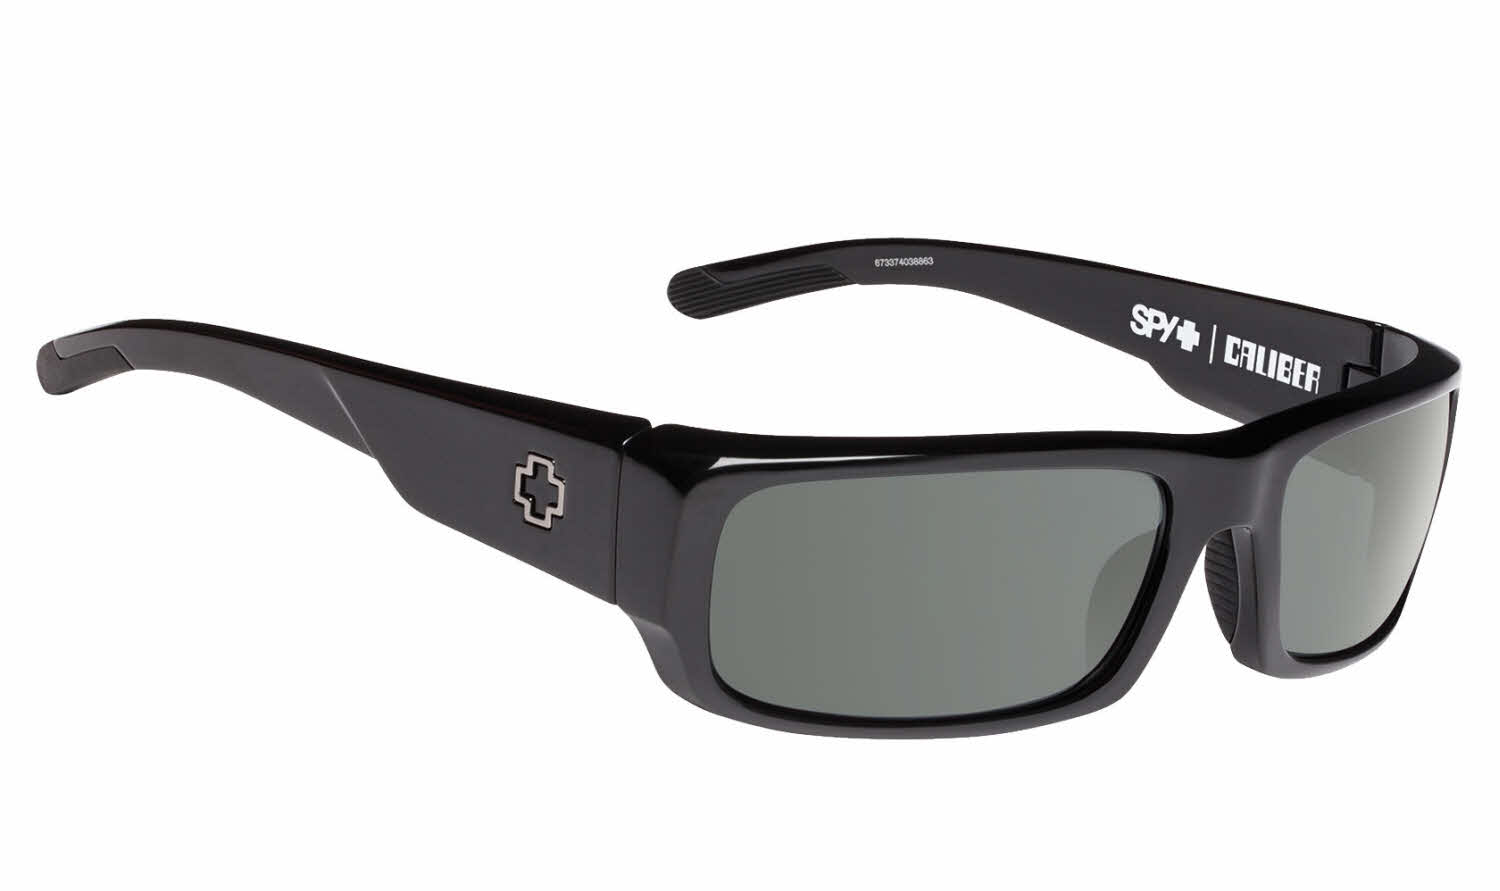 Prescription Spy Sunglasses  spy sunglasses free shipping framesdirect com